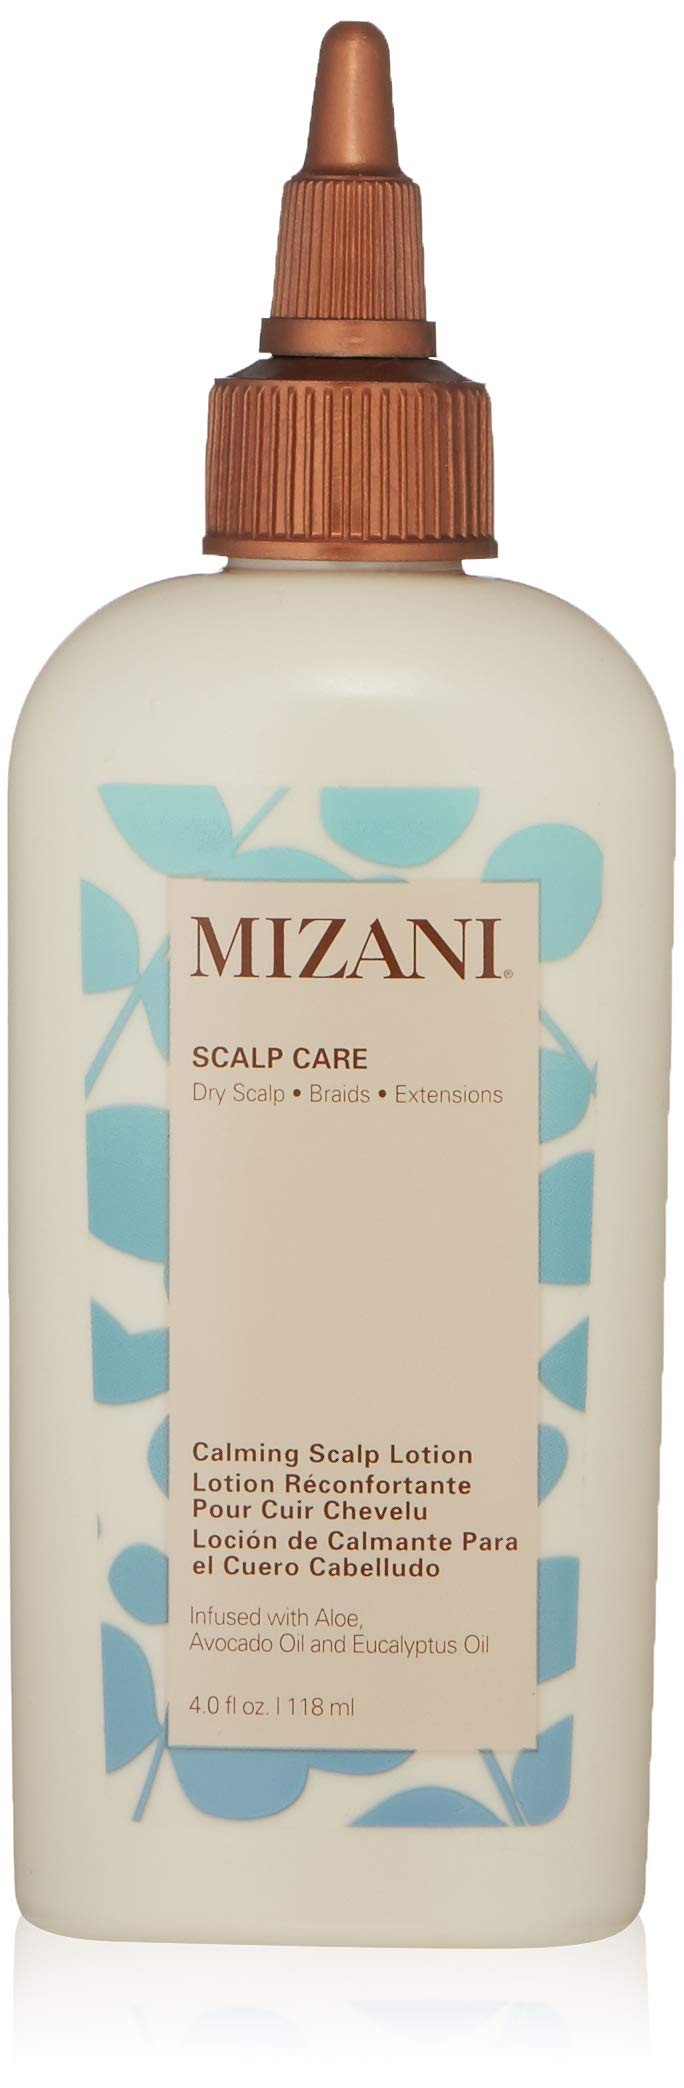 MIZANI Scalp Care Calming Scalp Lotion, 4 Fl Oz by MIZANI